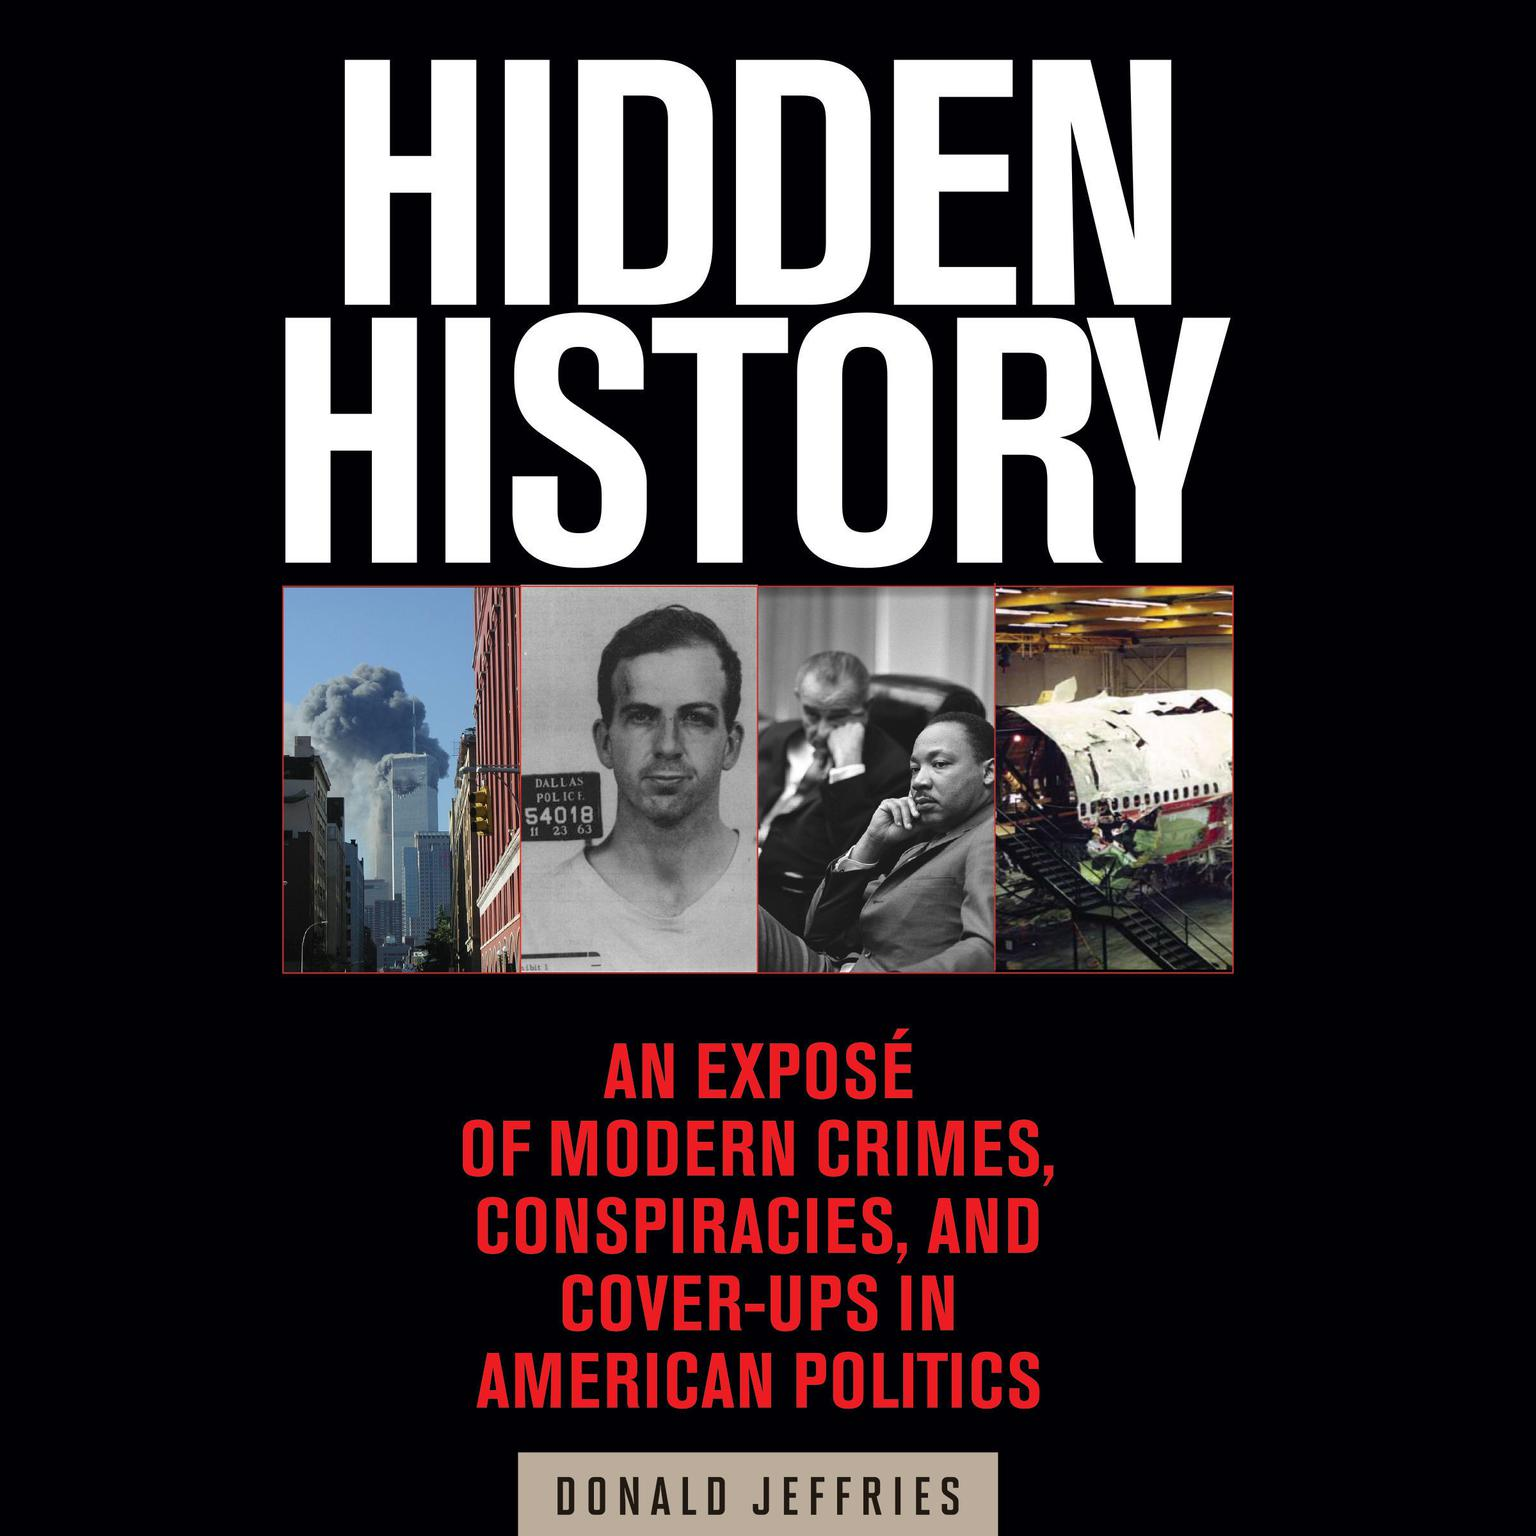 Hidden History: An Exposé of Modern Crimes, Conspiracies, and Cover-Ups in American Politics Audiobook, by Donald Jeffries